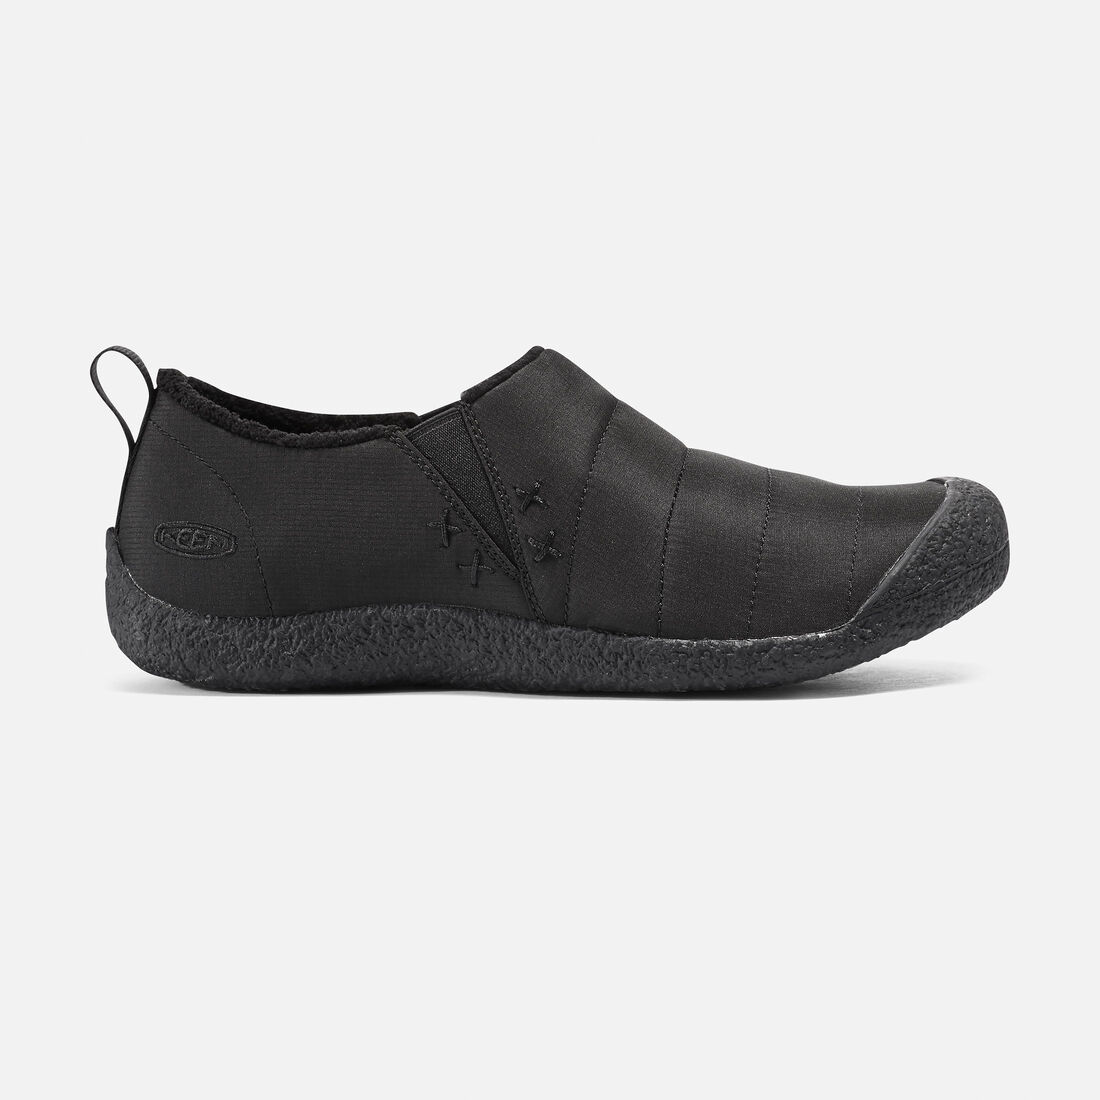 Men's Howser II in Monocrome Black - large view.